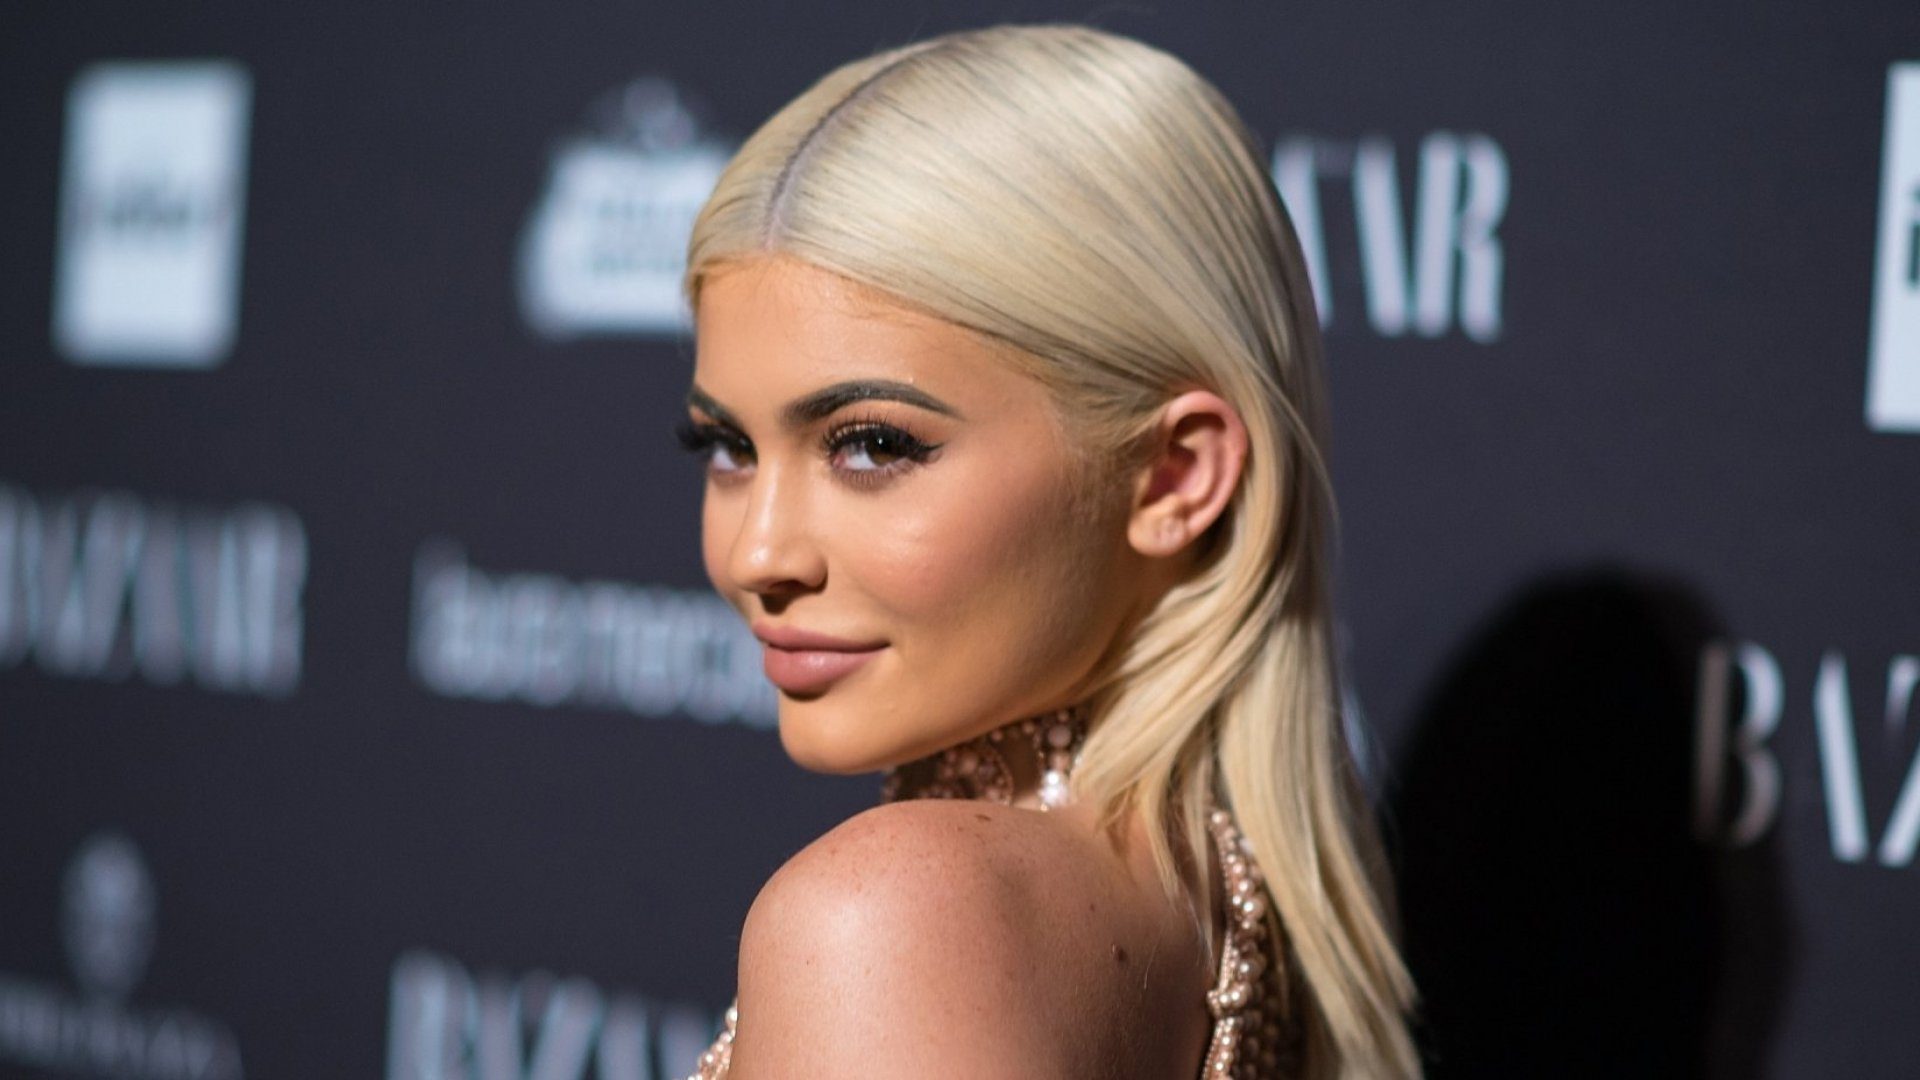 How Kylie Jenner Became The Youngest Self-Made (Almost) Billionaire (And How You Can Copy Her)